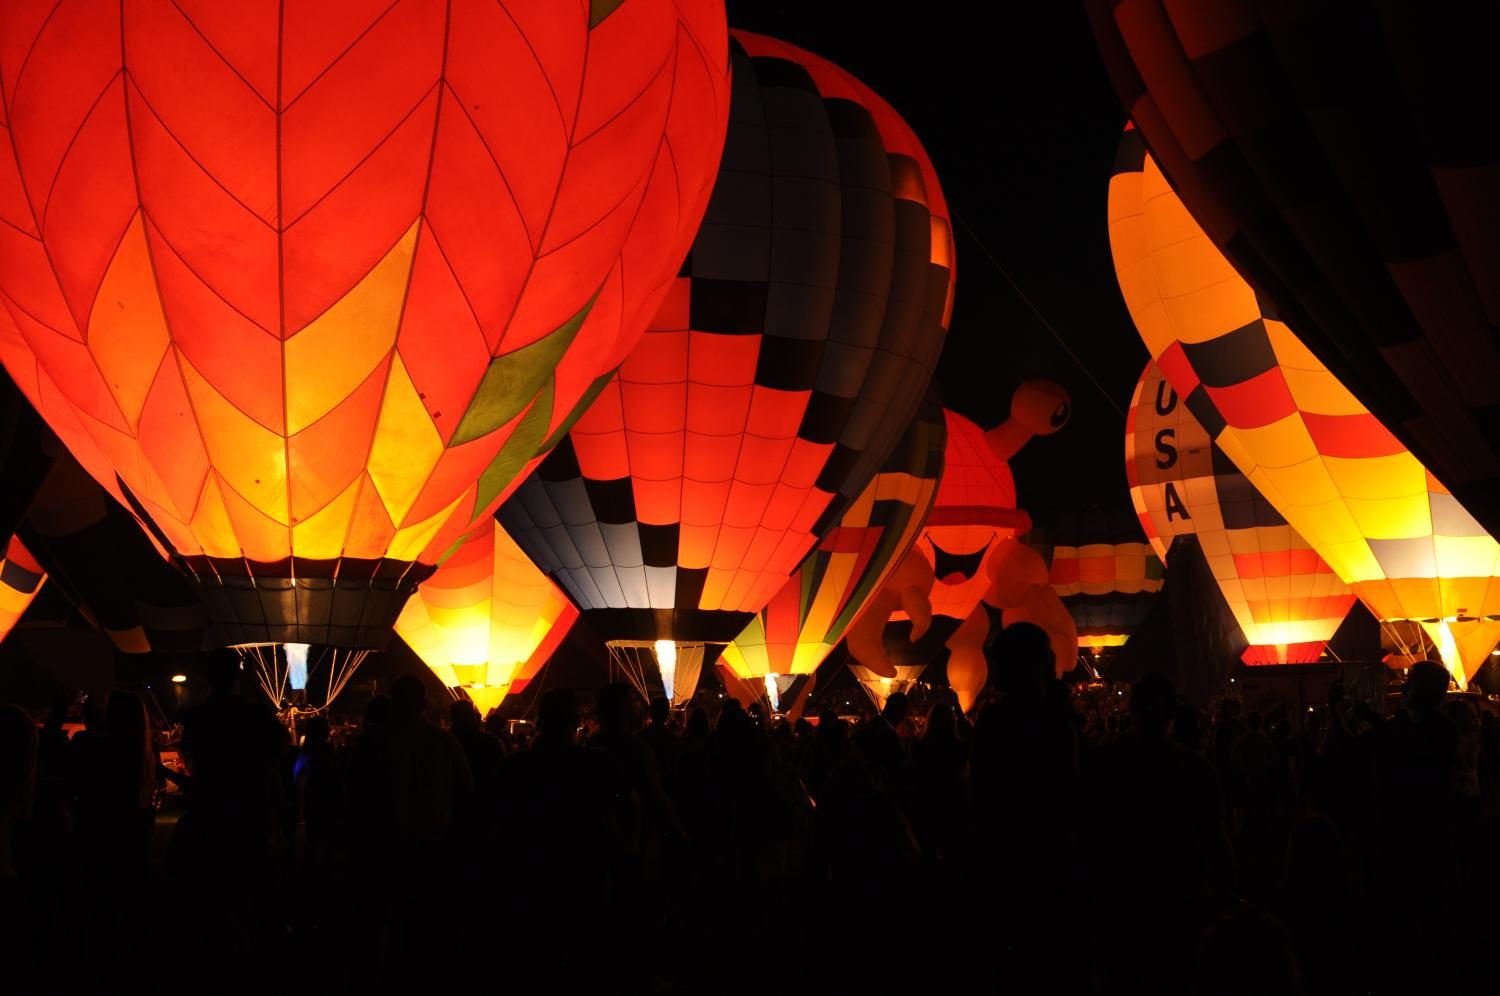 Hot air balloons light up the night sky of Colorado Springs